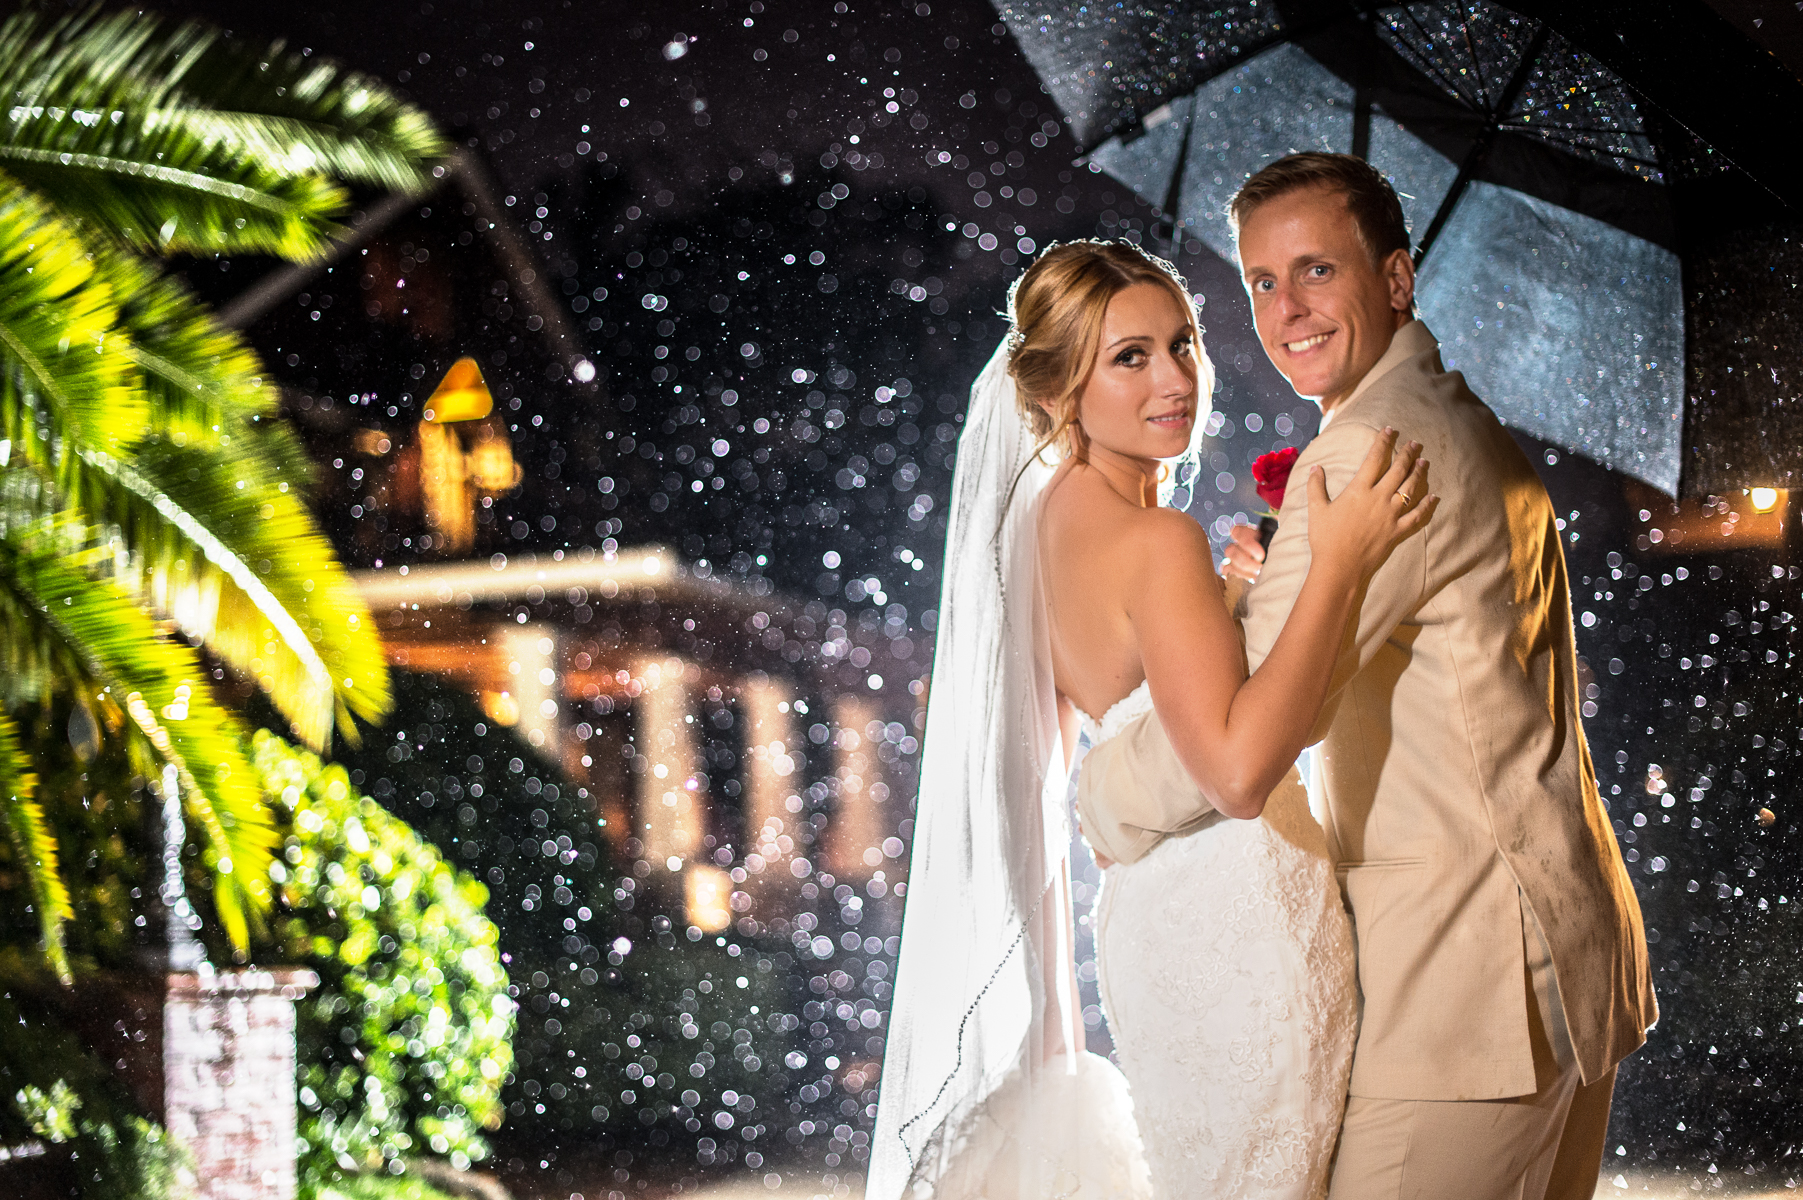 Best Rain Photography Wedding Central Florida